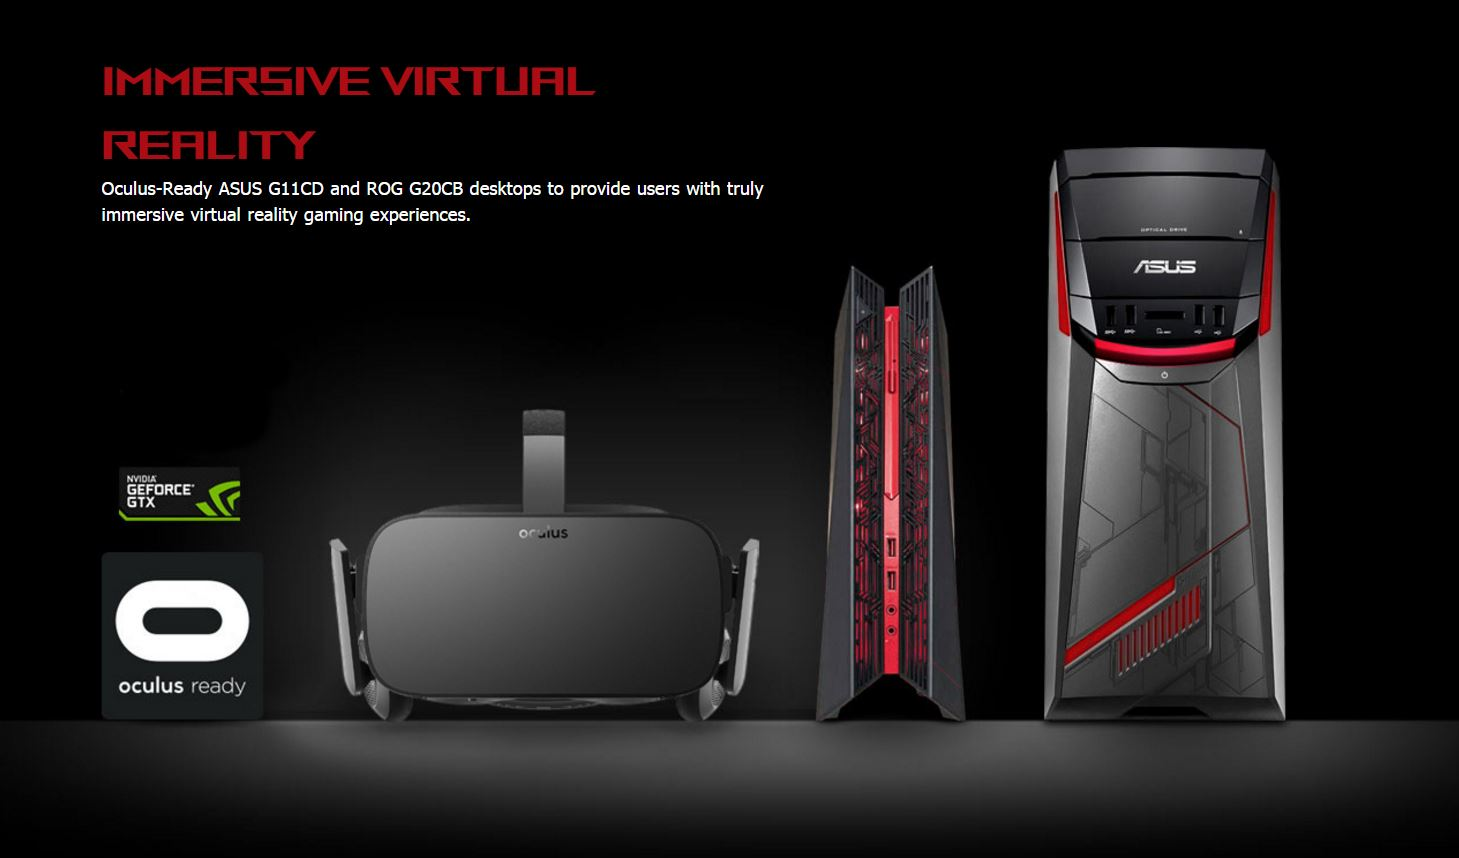 Ces Oculus Vr Ready With Rog G20 And Asus G11 Rog